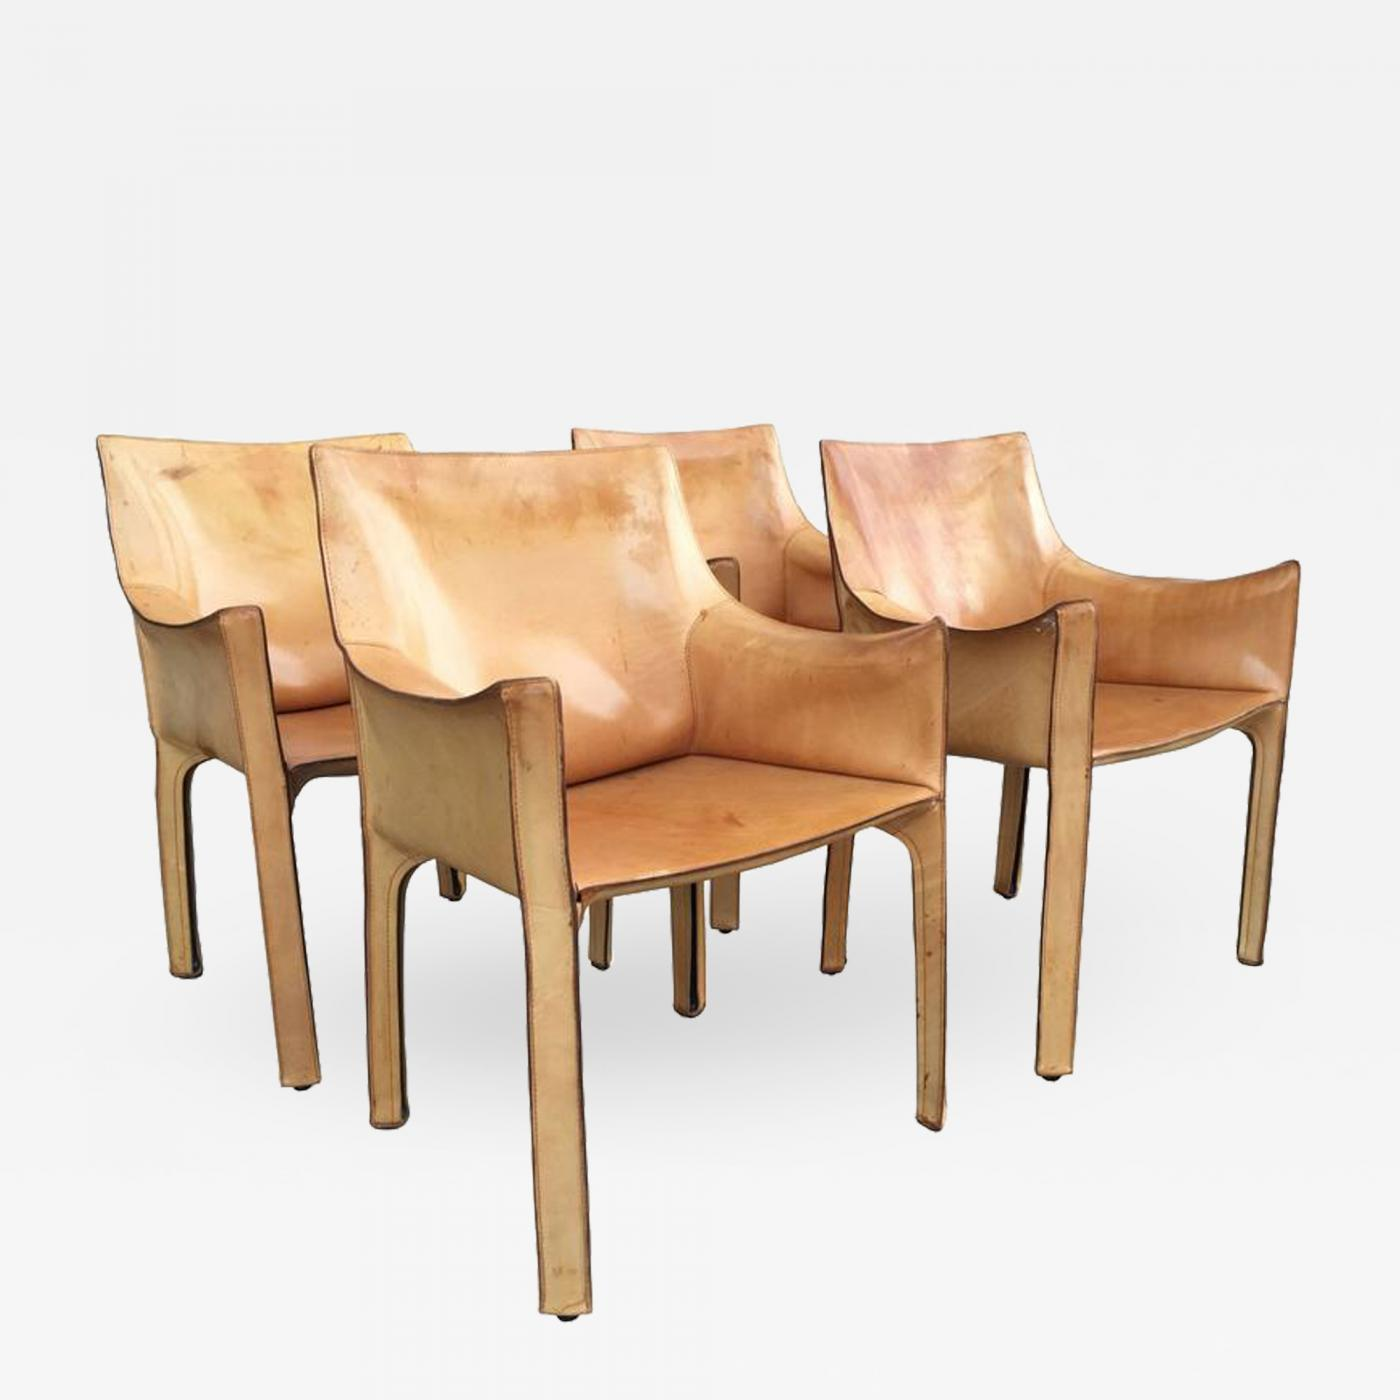 Brilliant Antonio Bellini Set Of Four Cab Leather Chairs By Antonio Bellini For Cassina Ocoug Best Dining Table And Chair Ideas Images Ocougorg